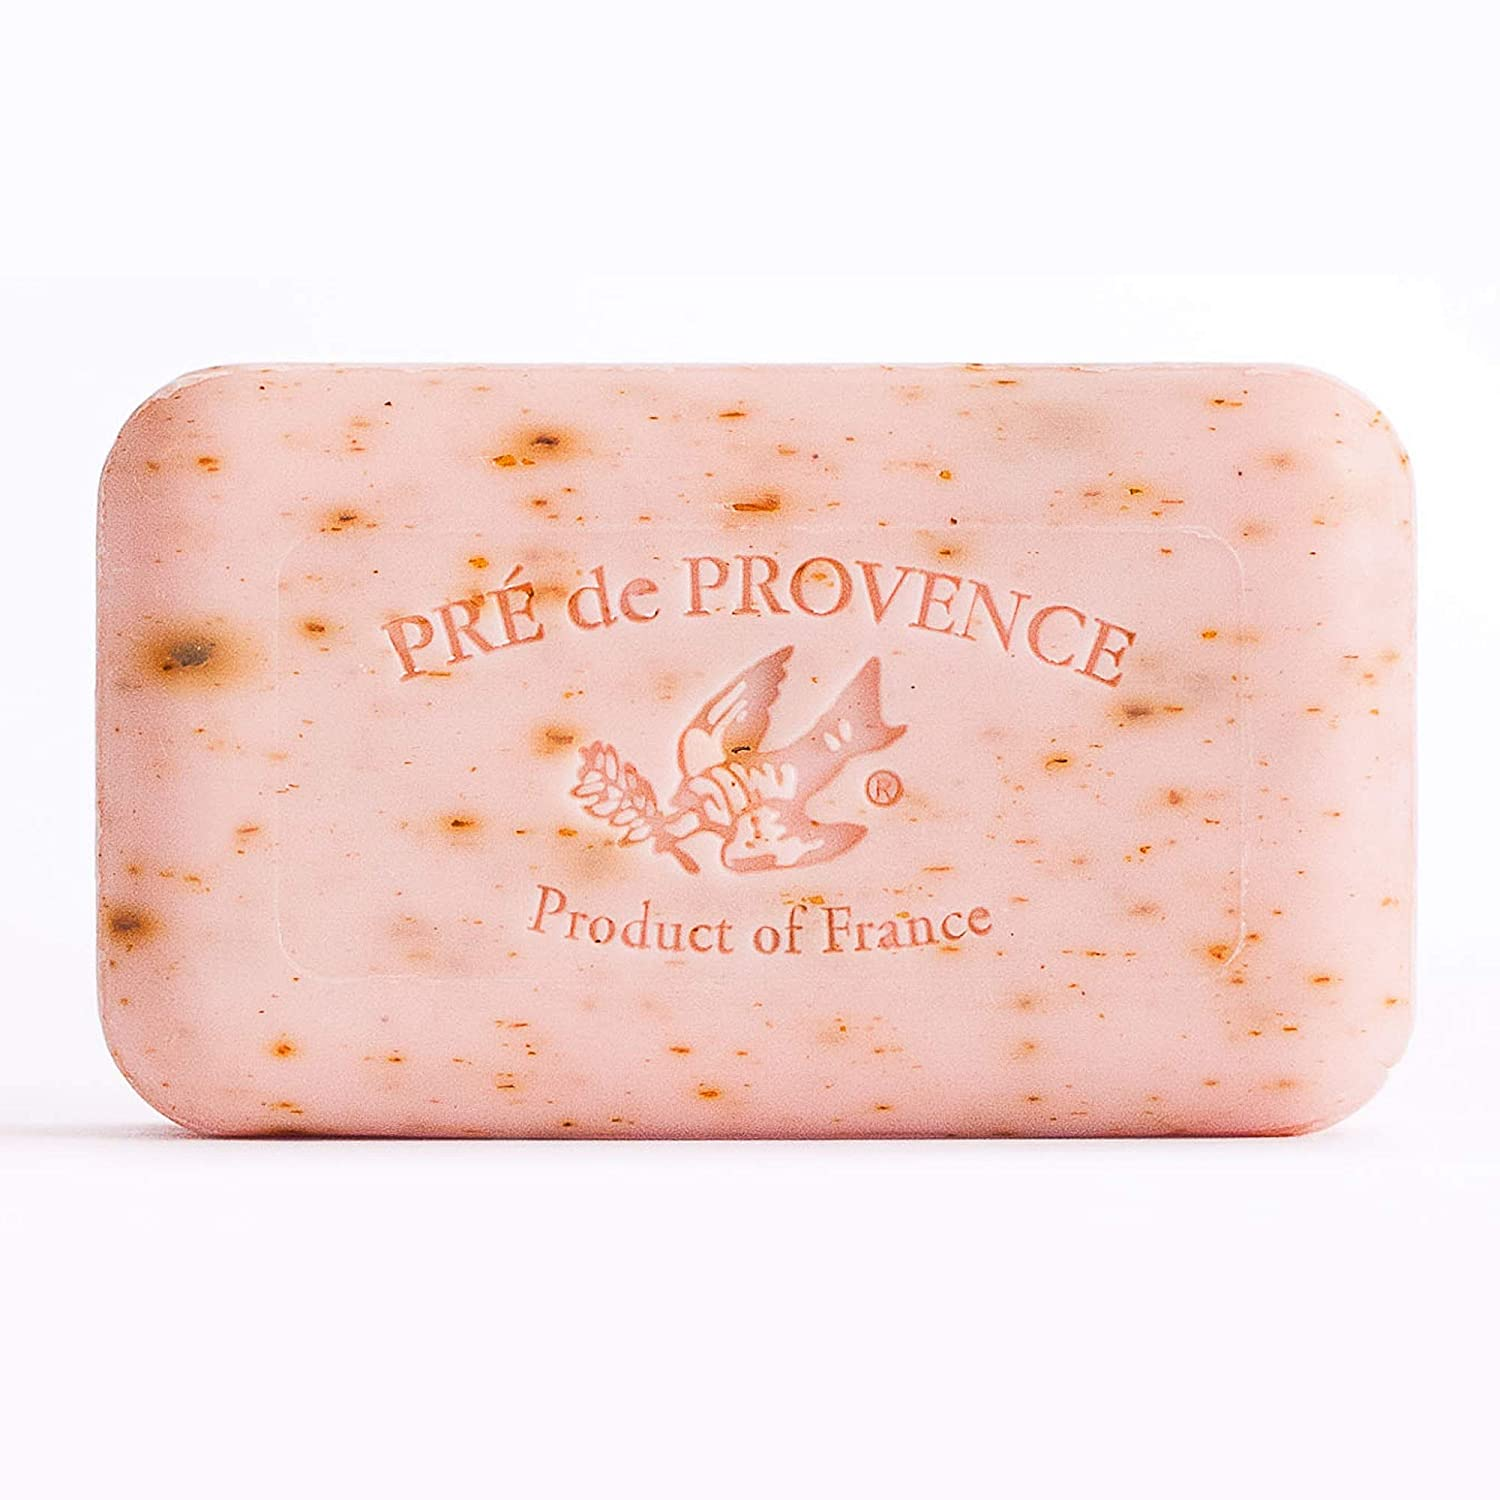 Pre de Provence Shea Butter & Rose Petal Bar Soap